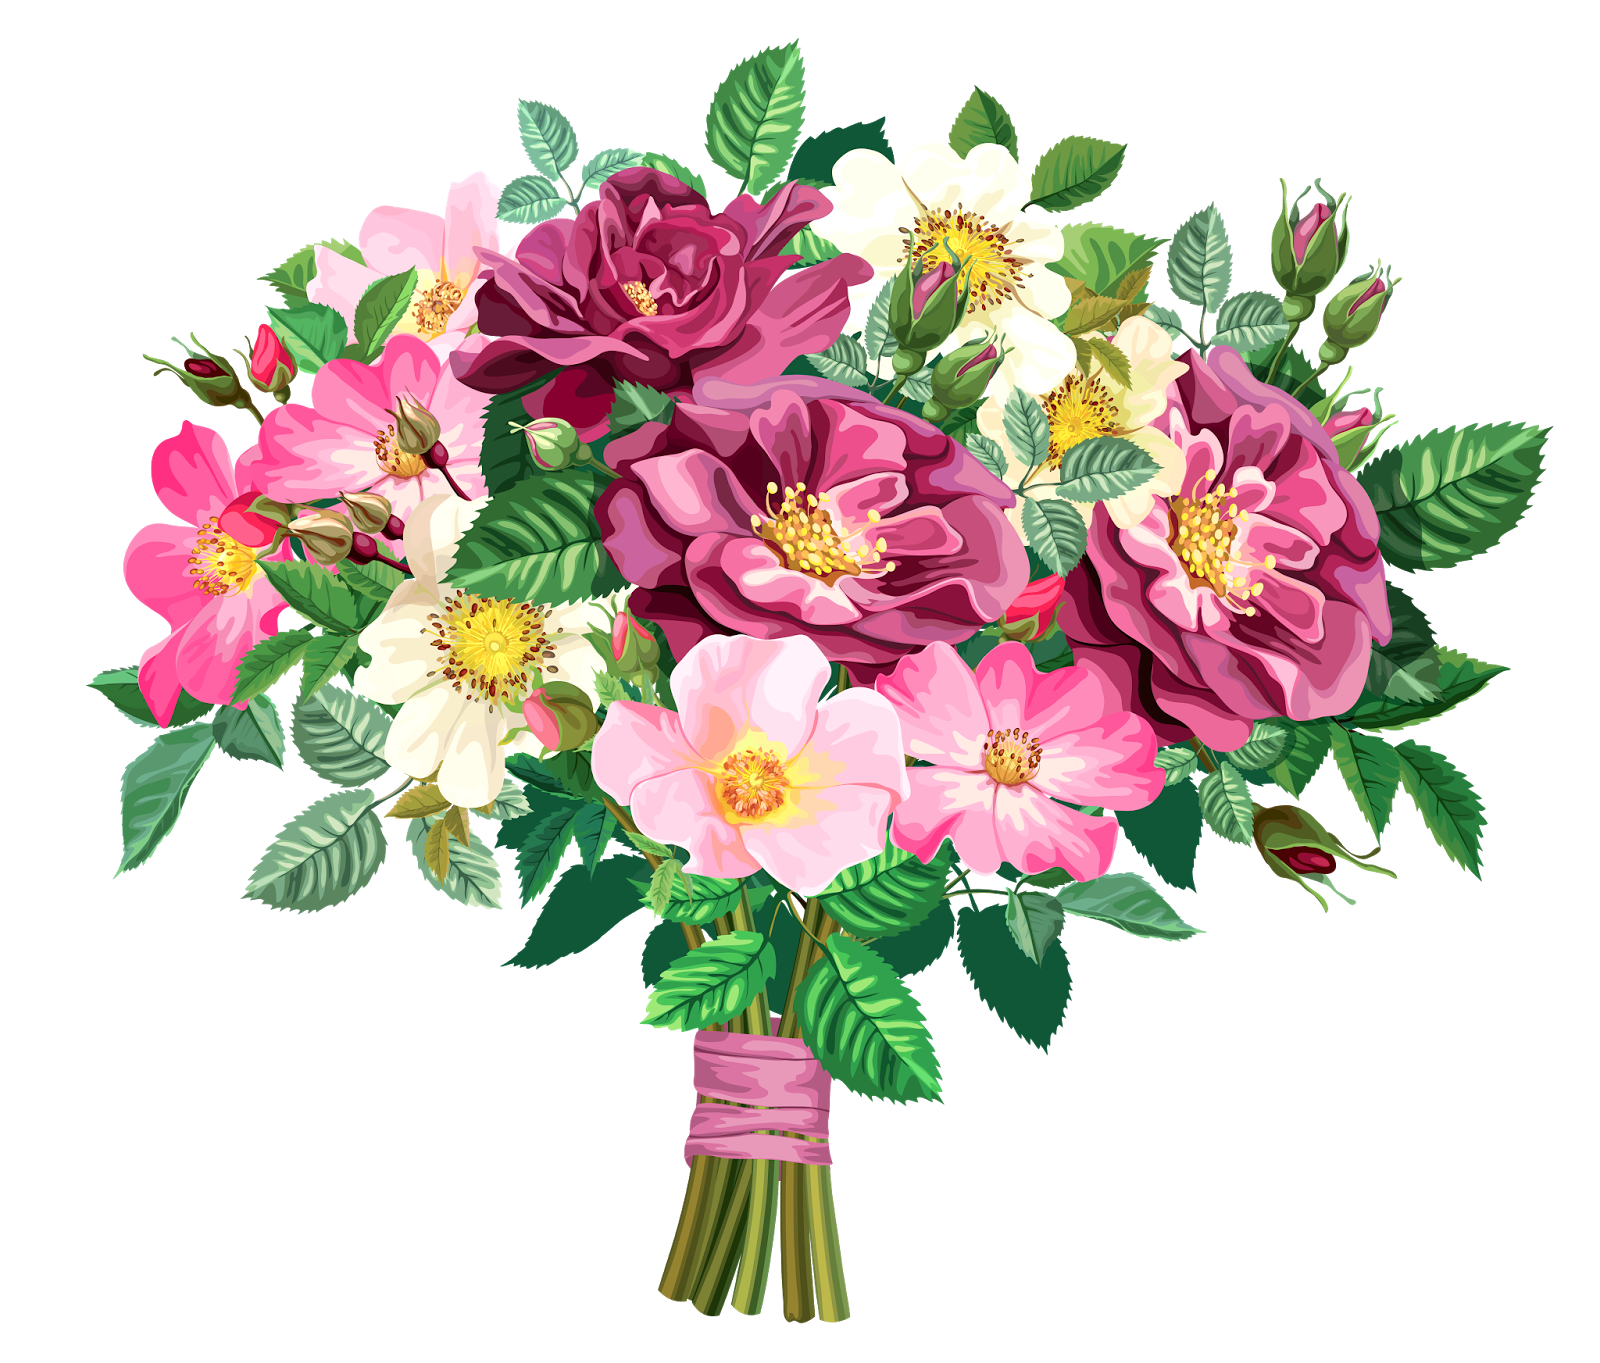 ROSE BOUQUET CLİPART TRANSPARENT | Joy Design Studio